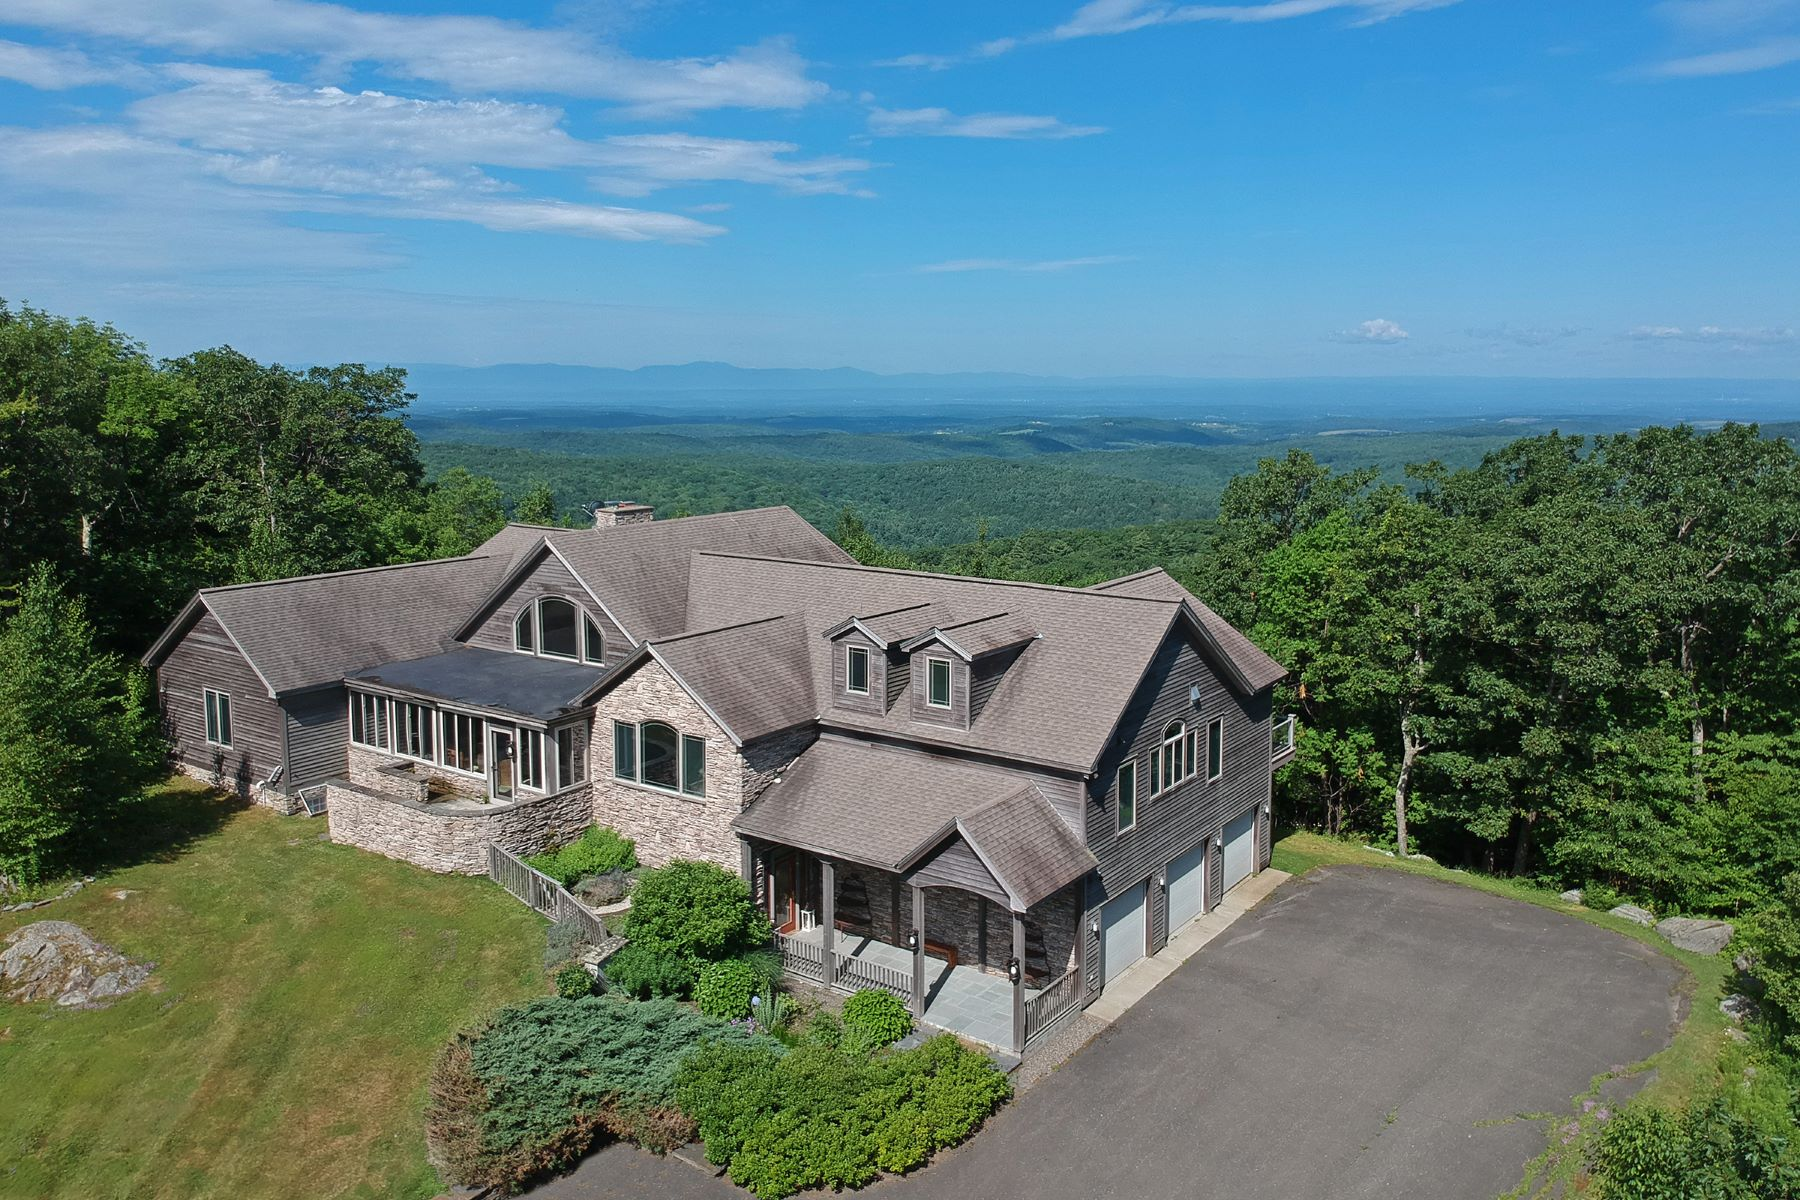 Single Family Homes for Active at 80 Mile Mountain and Hudson Valley Views 18 Heather Ln Canaan, New York 12029 United States